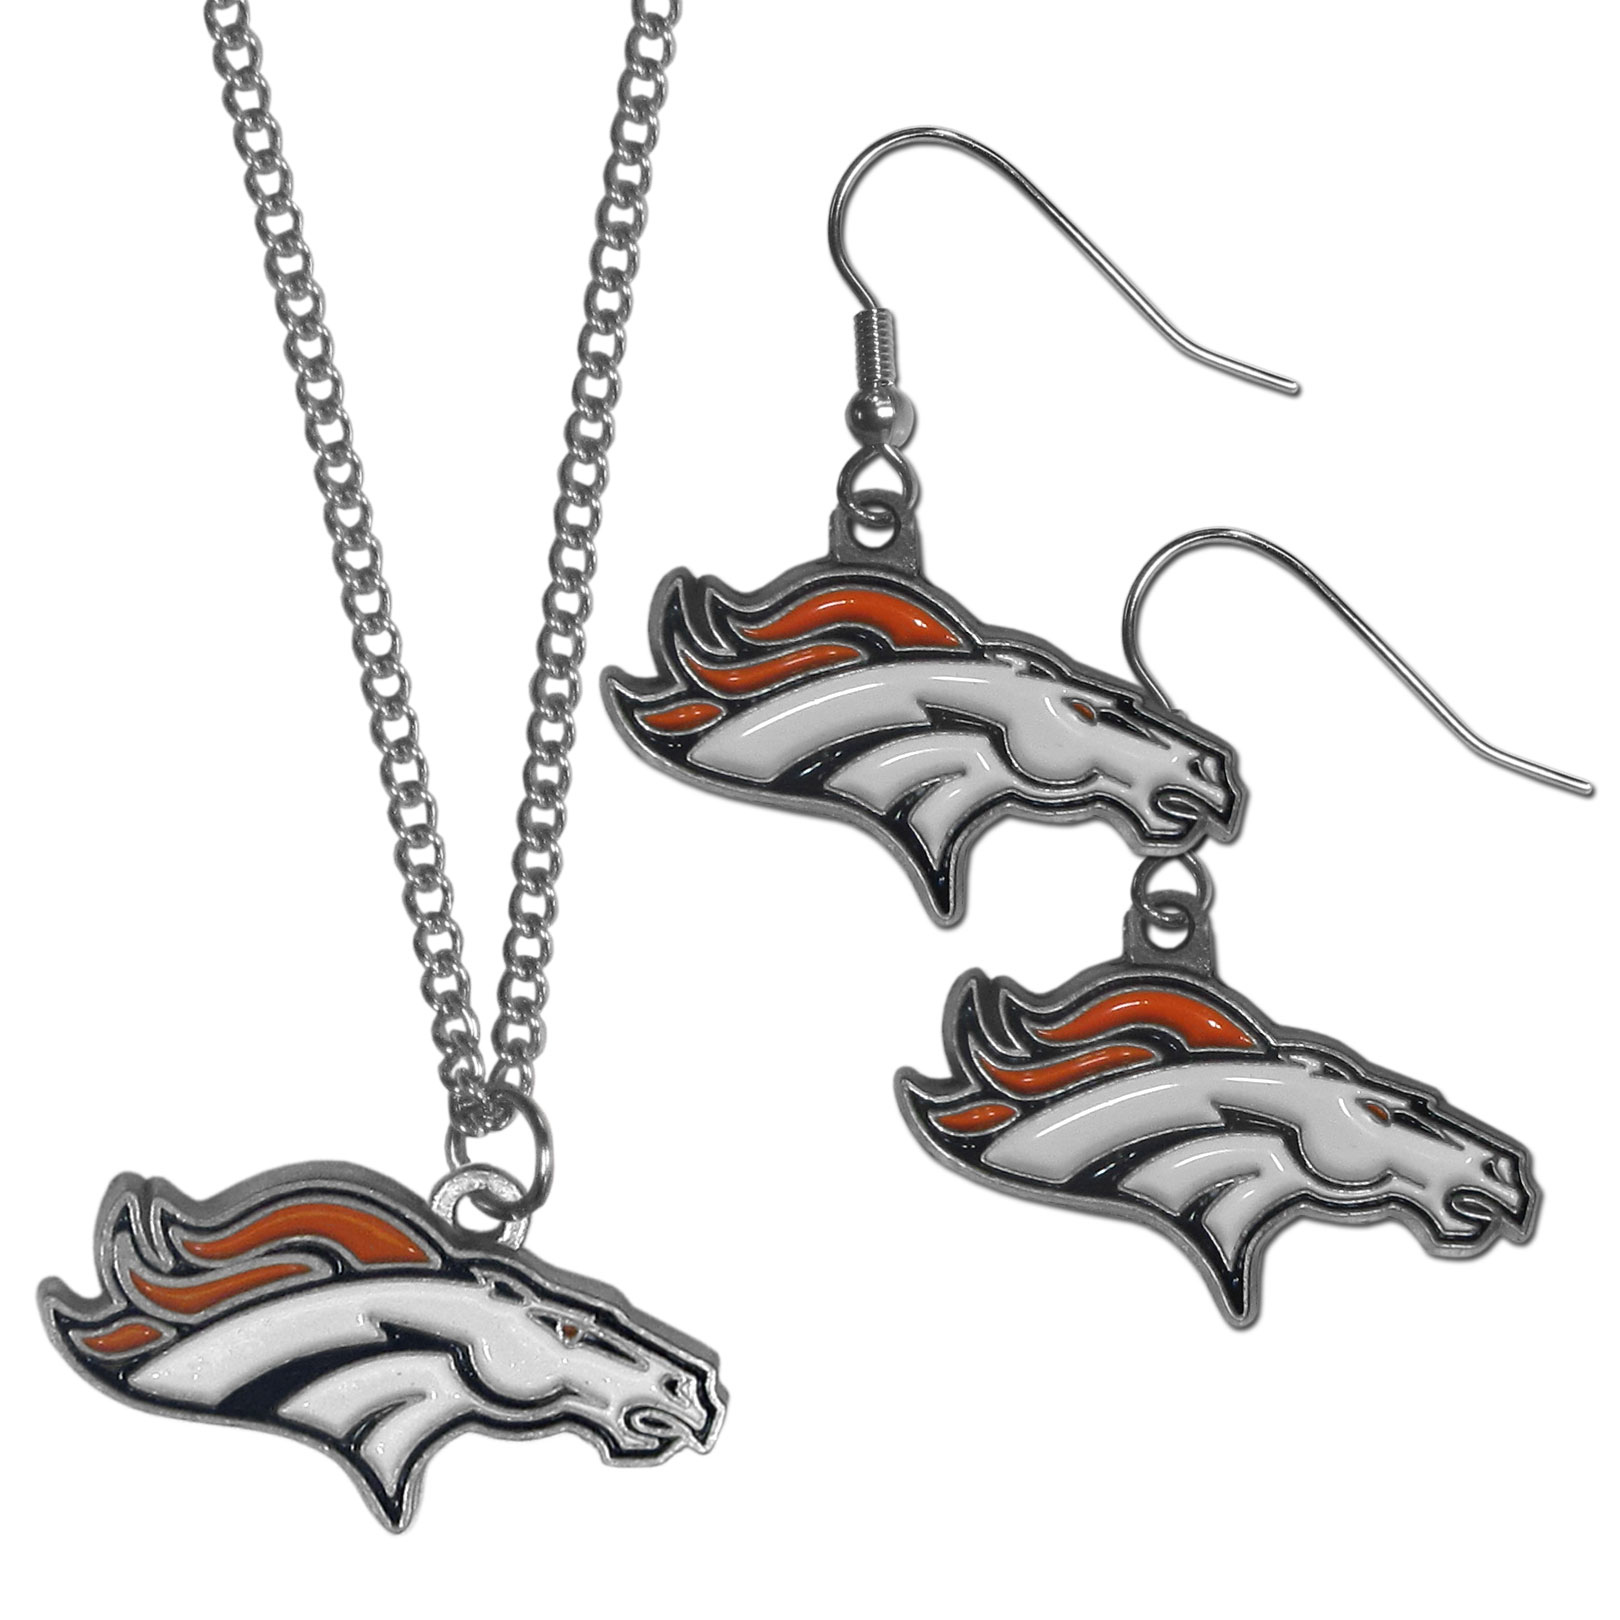 Denver Broncos Dangle Earrings and Chain Necklace Set - This classic jewelry set contains are most popular Denver Broncos dangle earrings and 22 inch chain necklace. The trendy, dangle earrings are lightweight and feature a fully cast metal team charm with enameled team colors. The matching necklace completes this fashion forward combo and is a spirited set that is perfect for game day but nice enough for everyday.